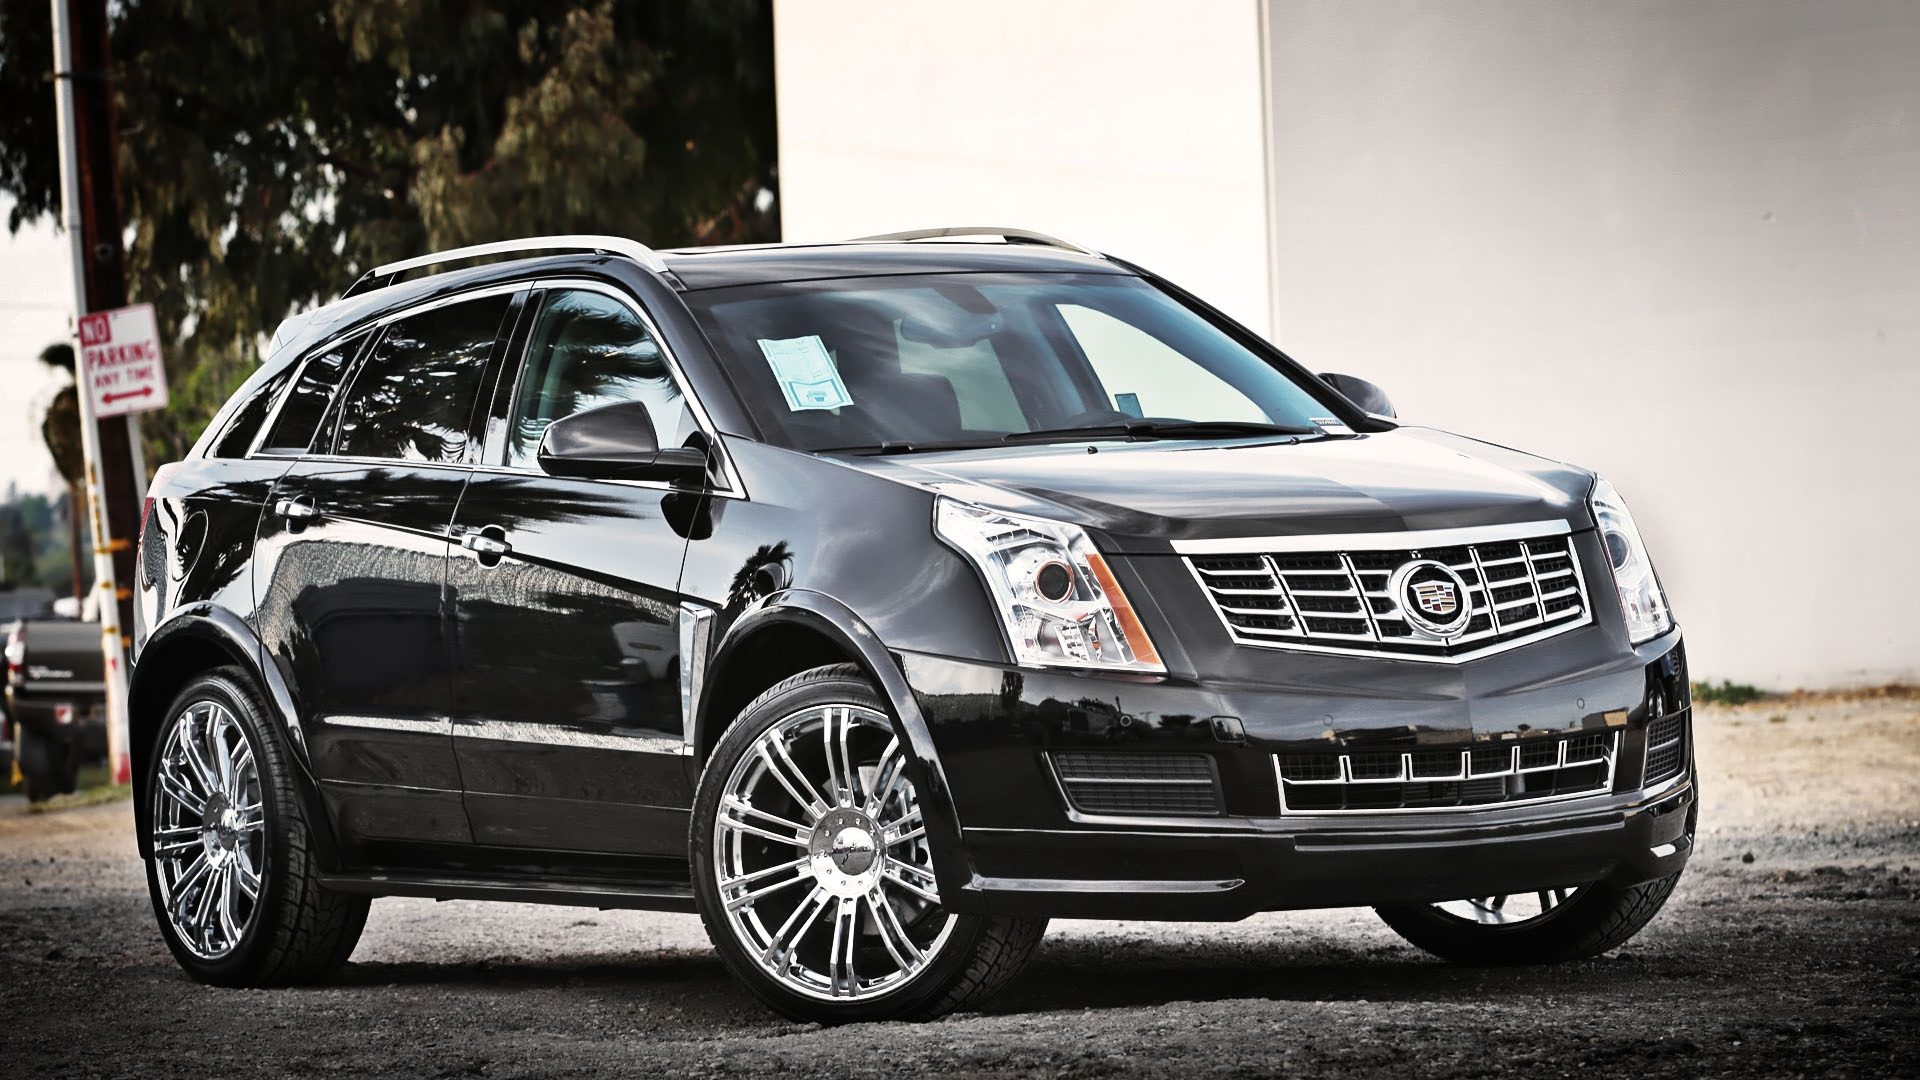 Pictures of cadillac srx ii 2013 #9